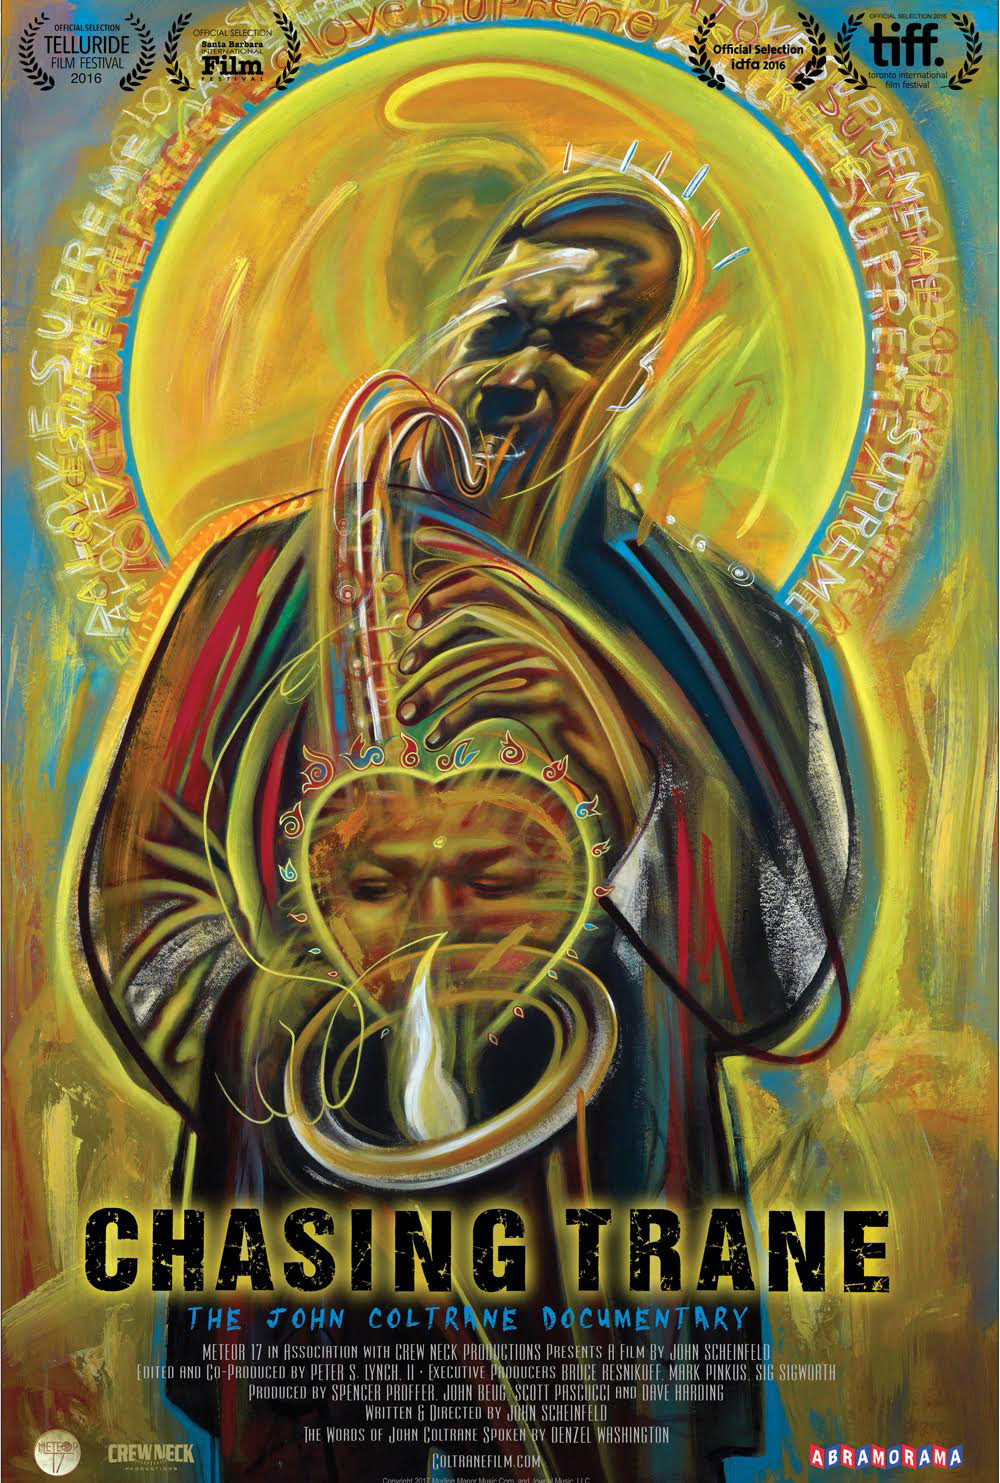 chasing-trane-the-john-coltrane-documentary_fea9d32c.jpg